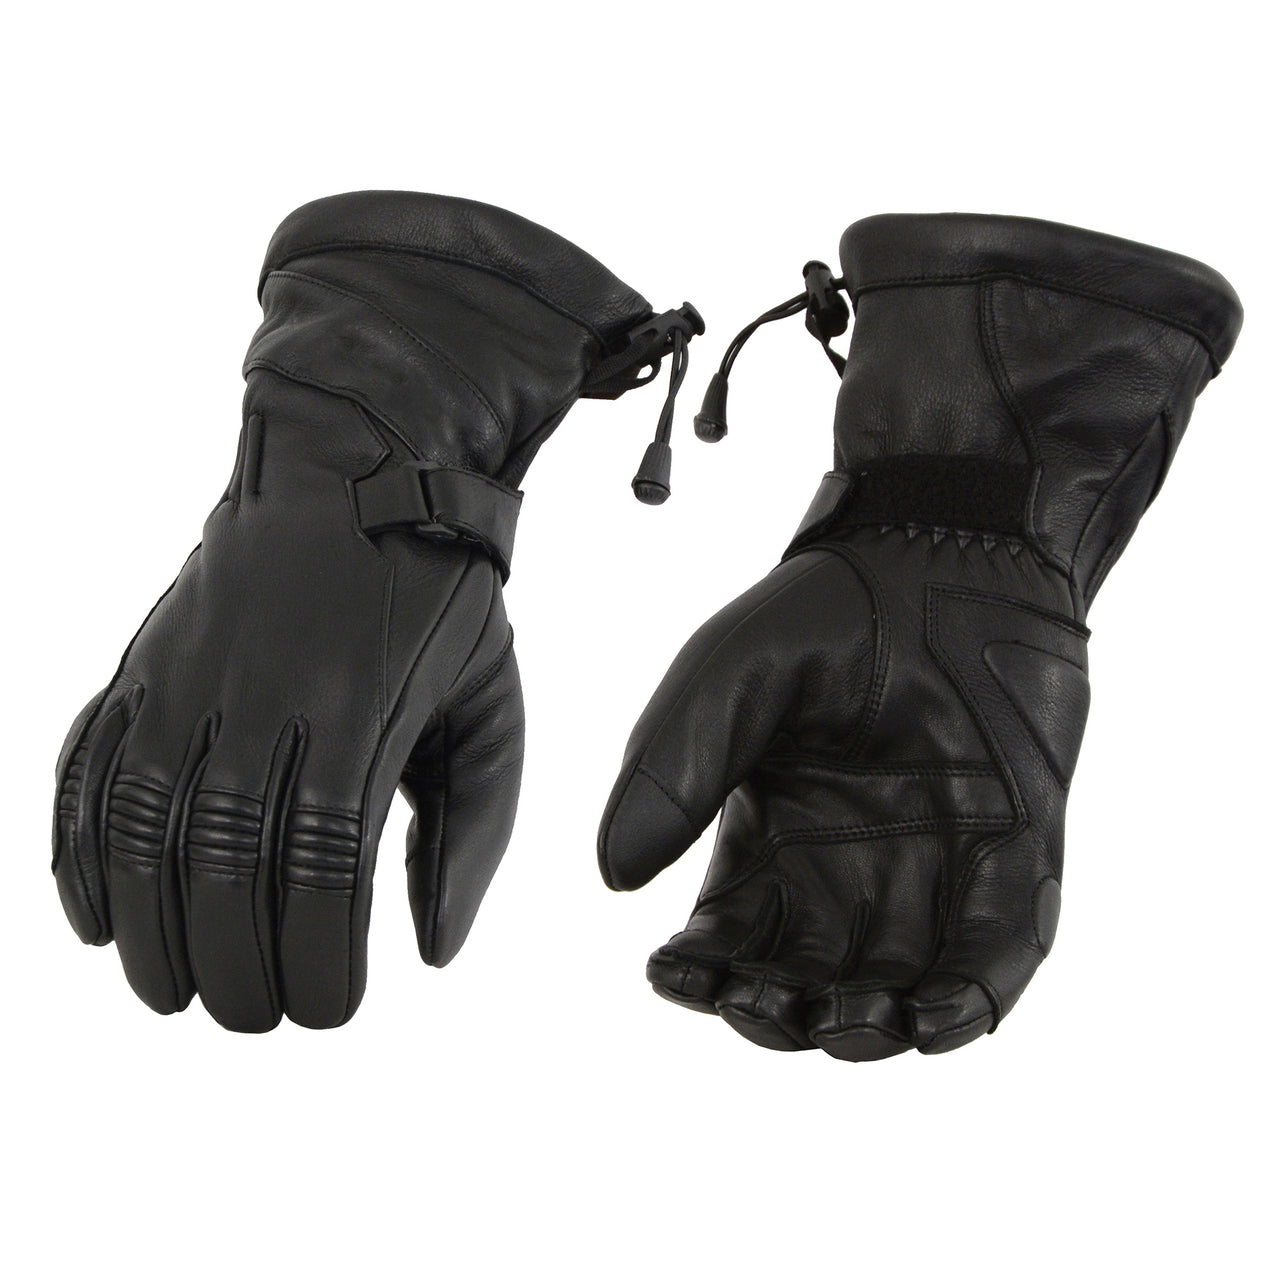 Men's Deerskin Leather Gauntlet Gloves w/ Draw String - HighwayLeather